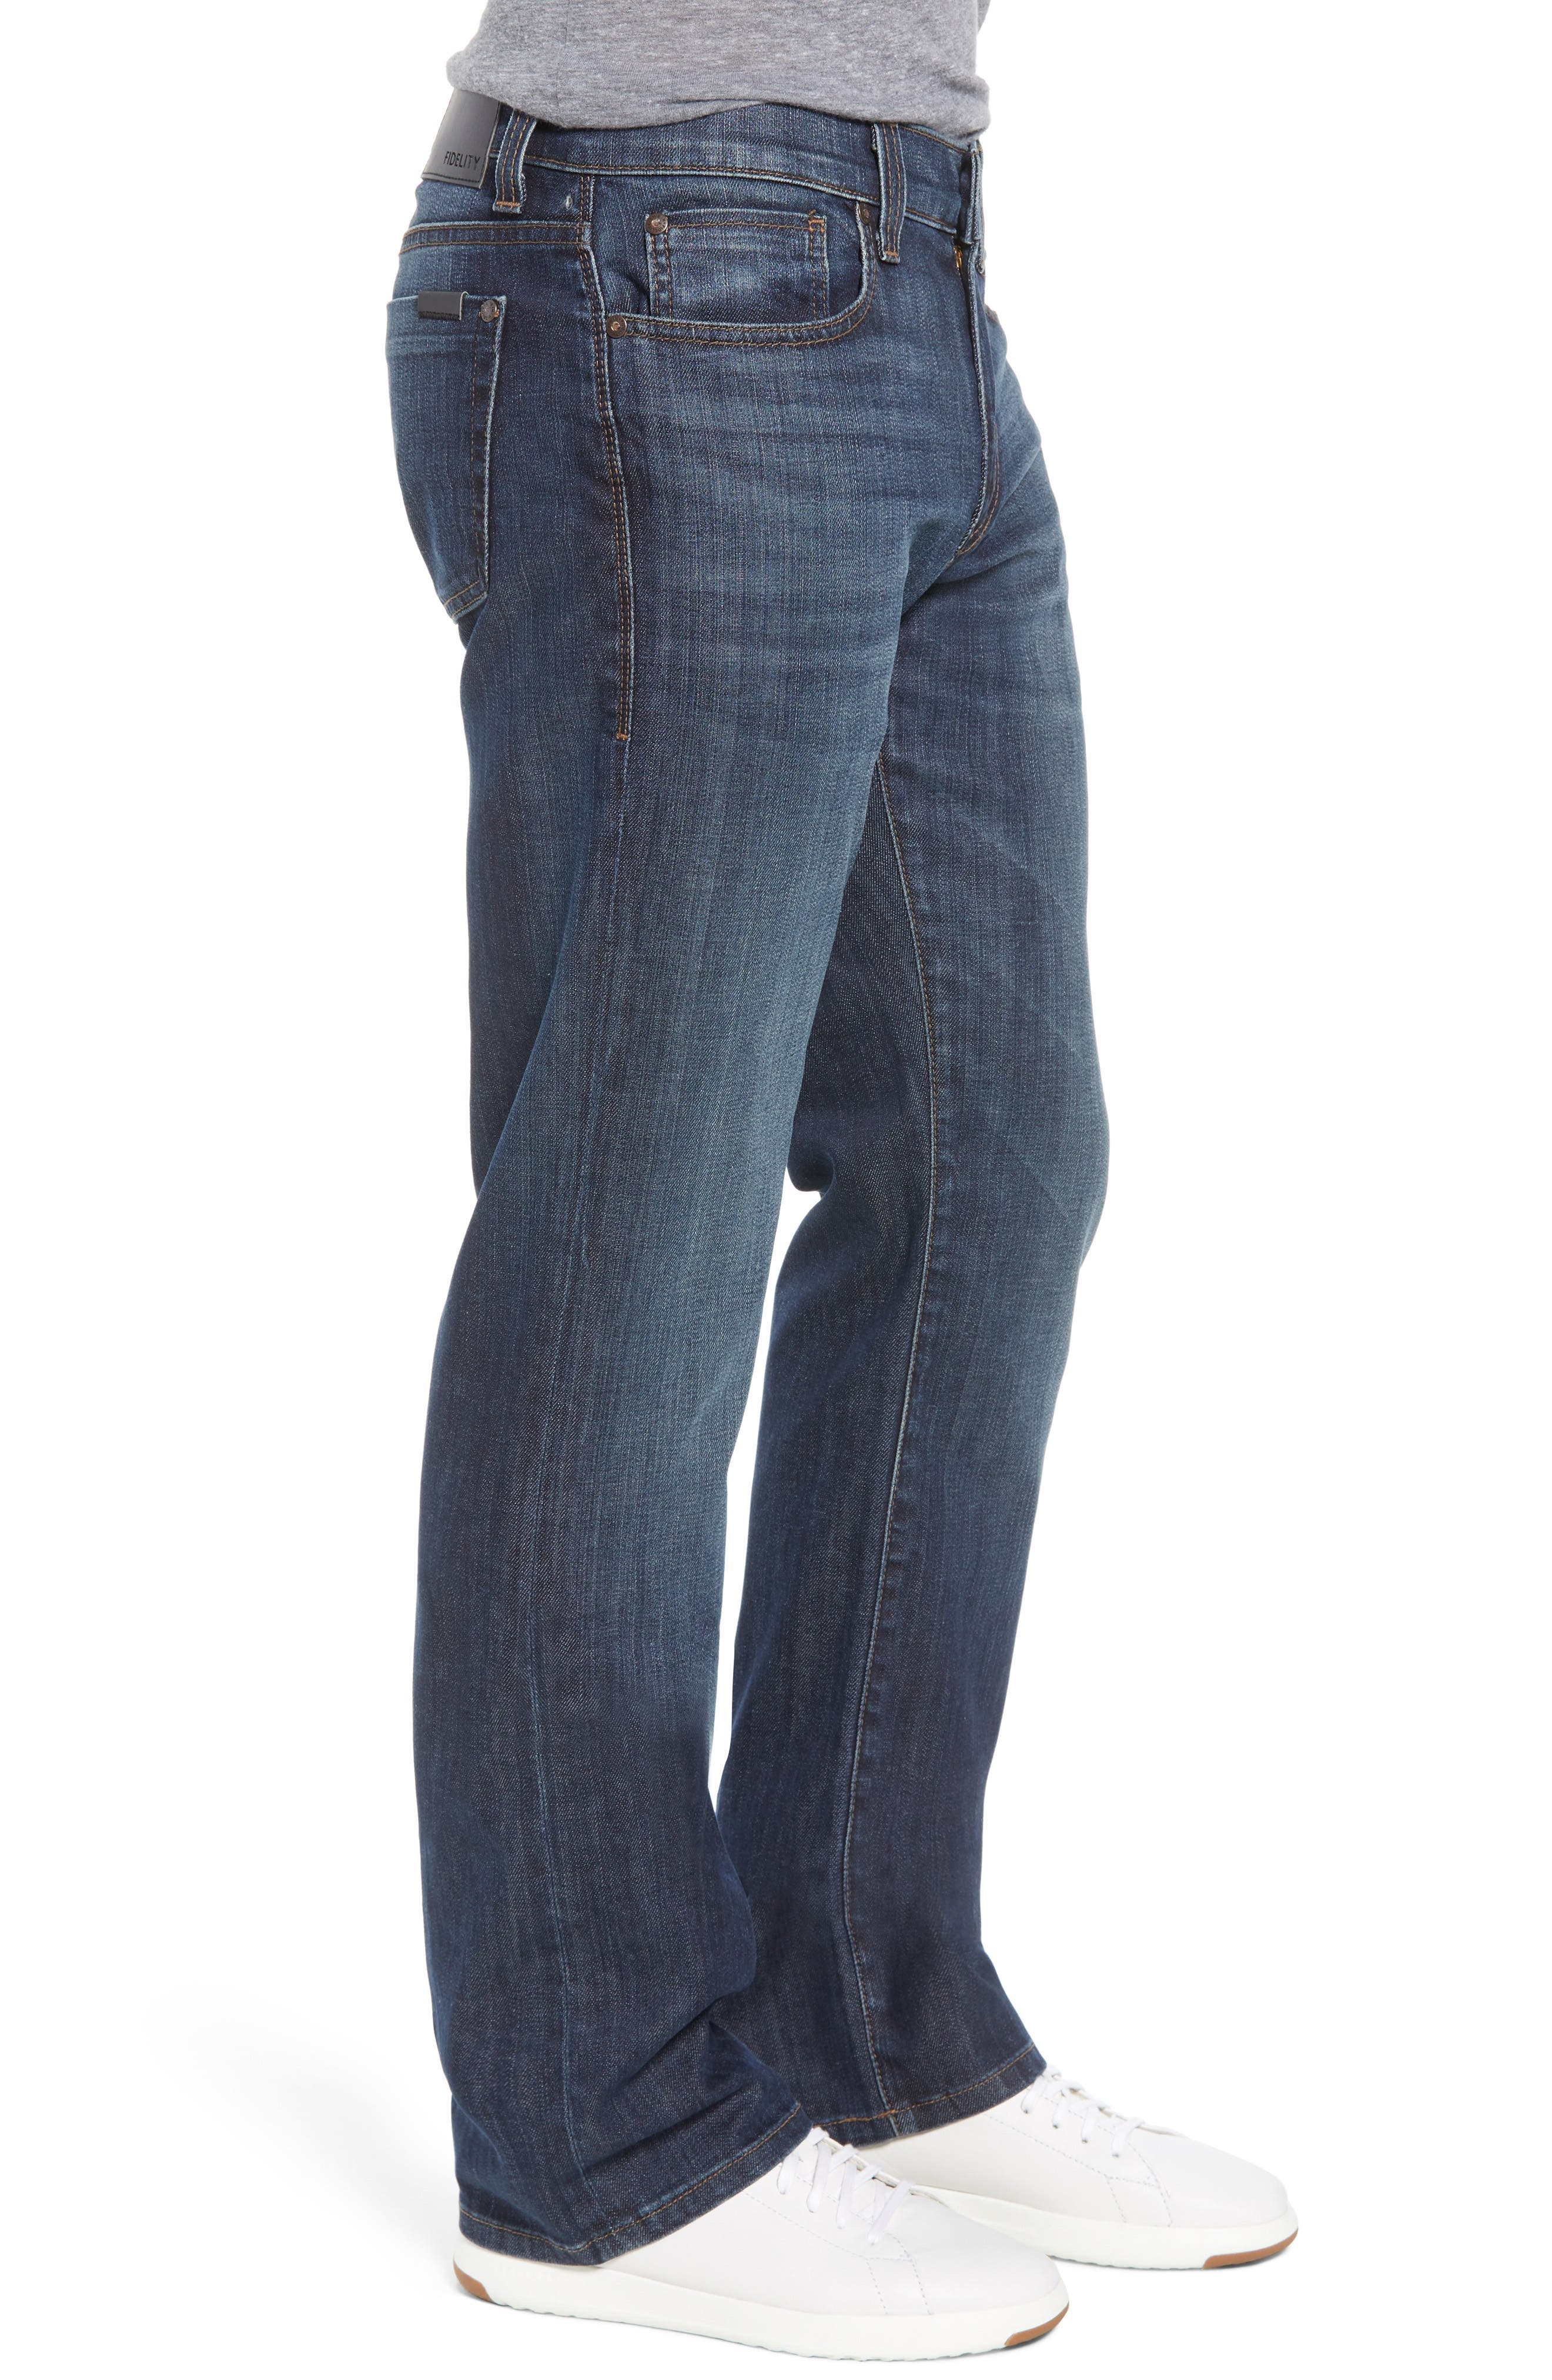 50-11 Relaxed Fit Jeans,                             Alternate thumbnail 3, color,                             400